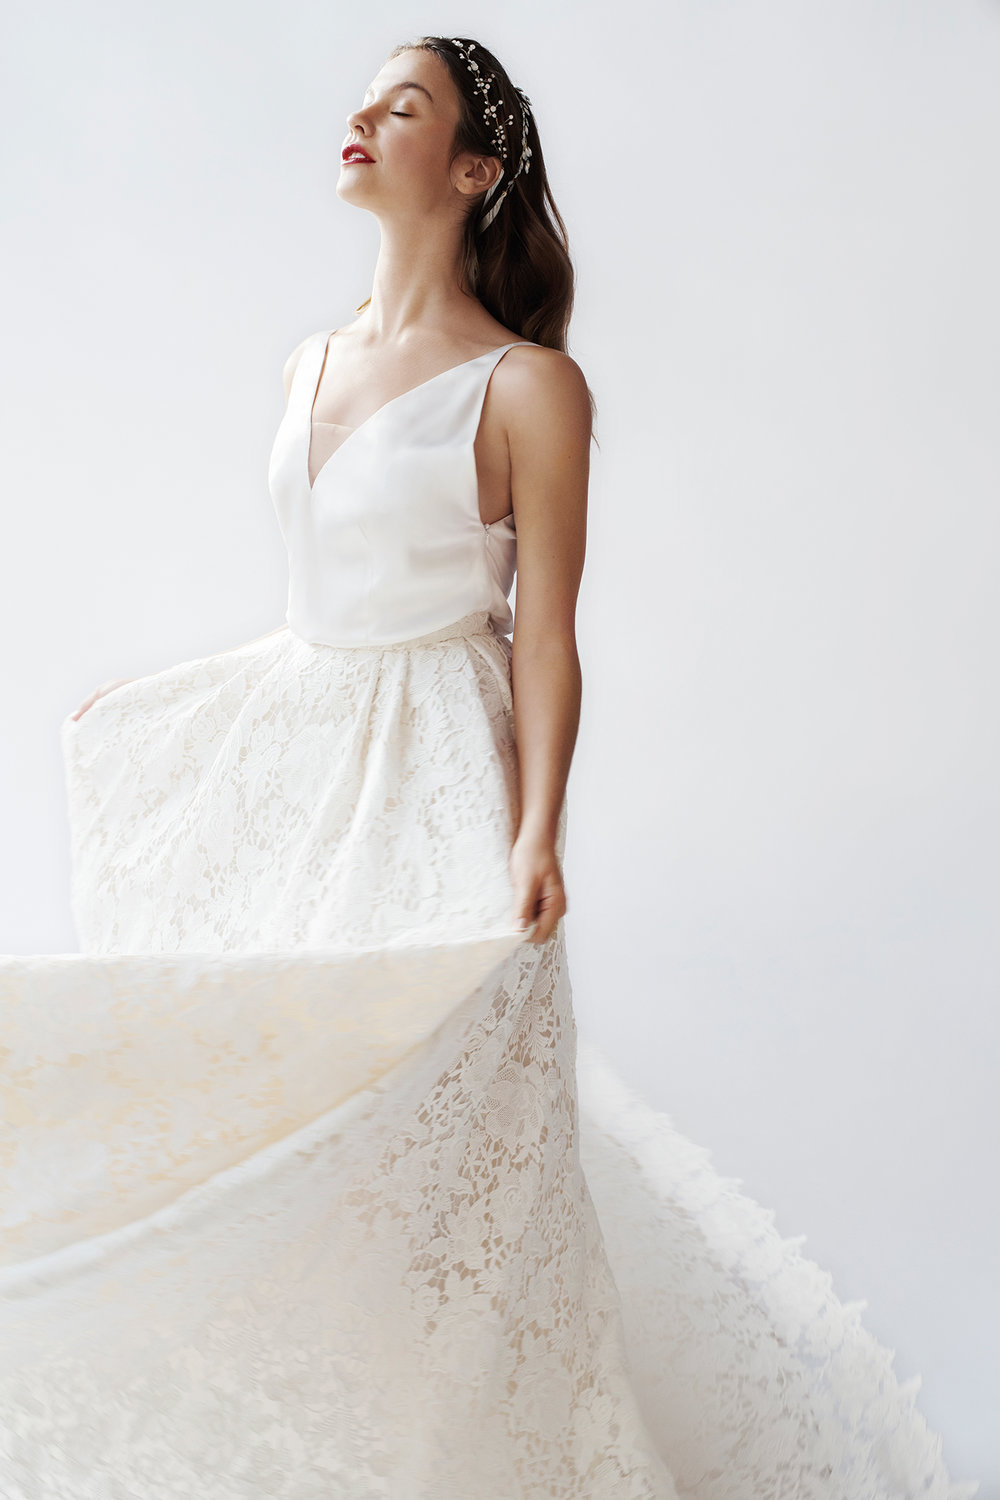 Nina - Royal wedding dress new style - loose, not centred and simple satin silk top with deep cut-out on the back and as a neckline, follows the shape of the body without literally clinging to the skin - refined pleated skirt worked out in sumptuous guipure lace.